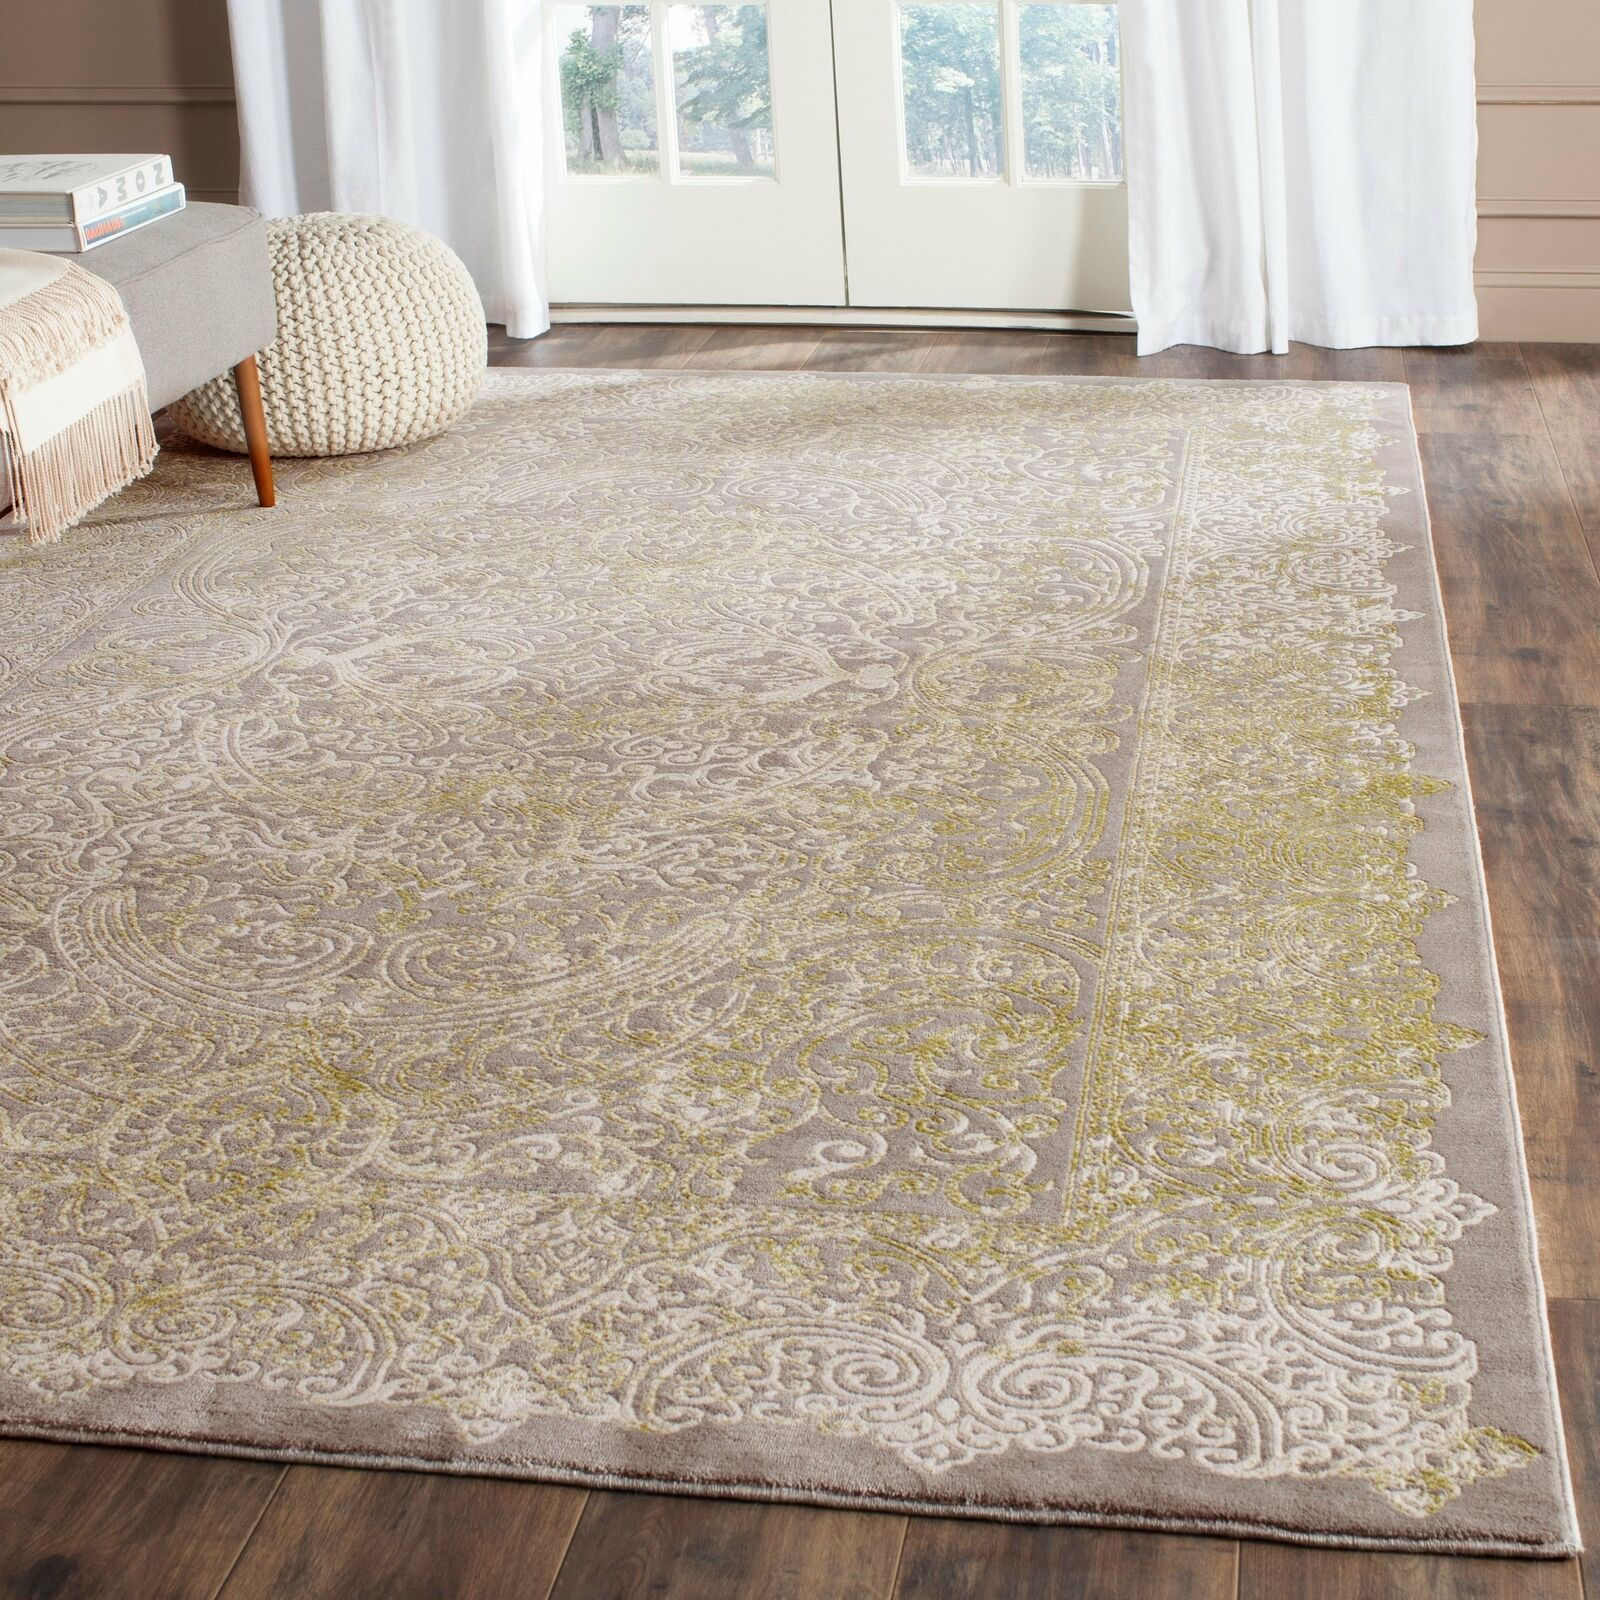 Safavieh Passion Grey Traditional Rug 8 X 11 For Sale Online Ebay